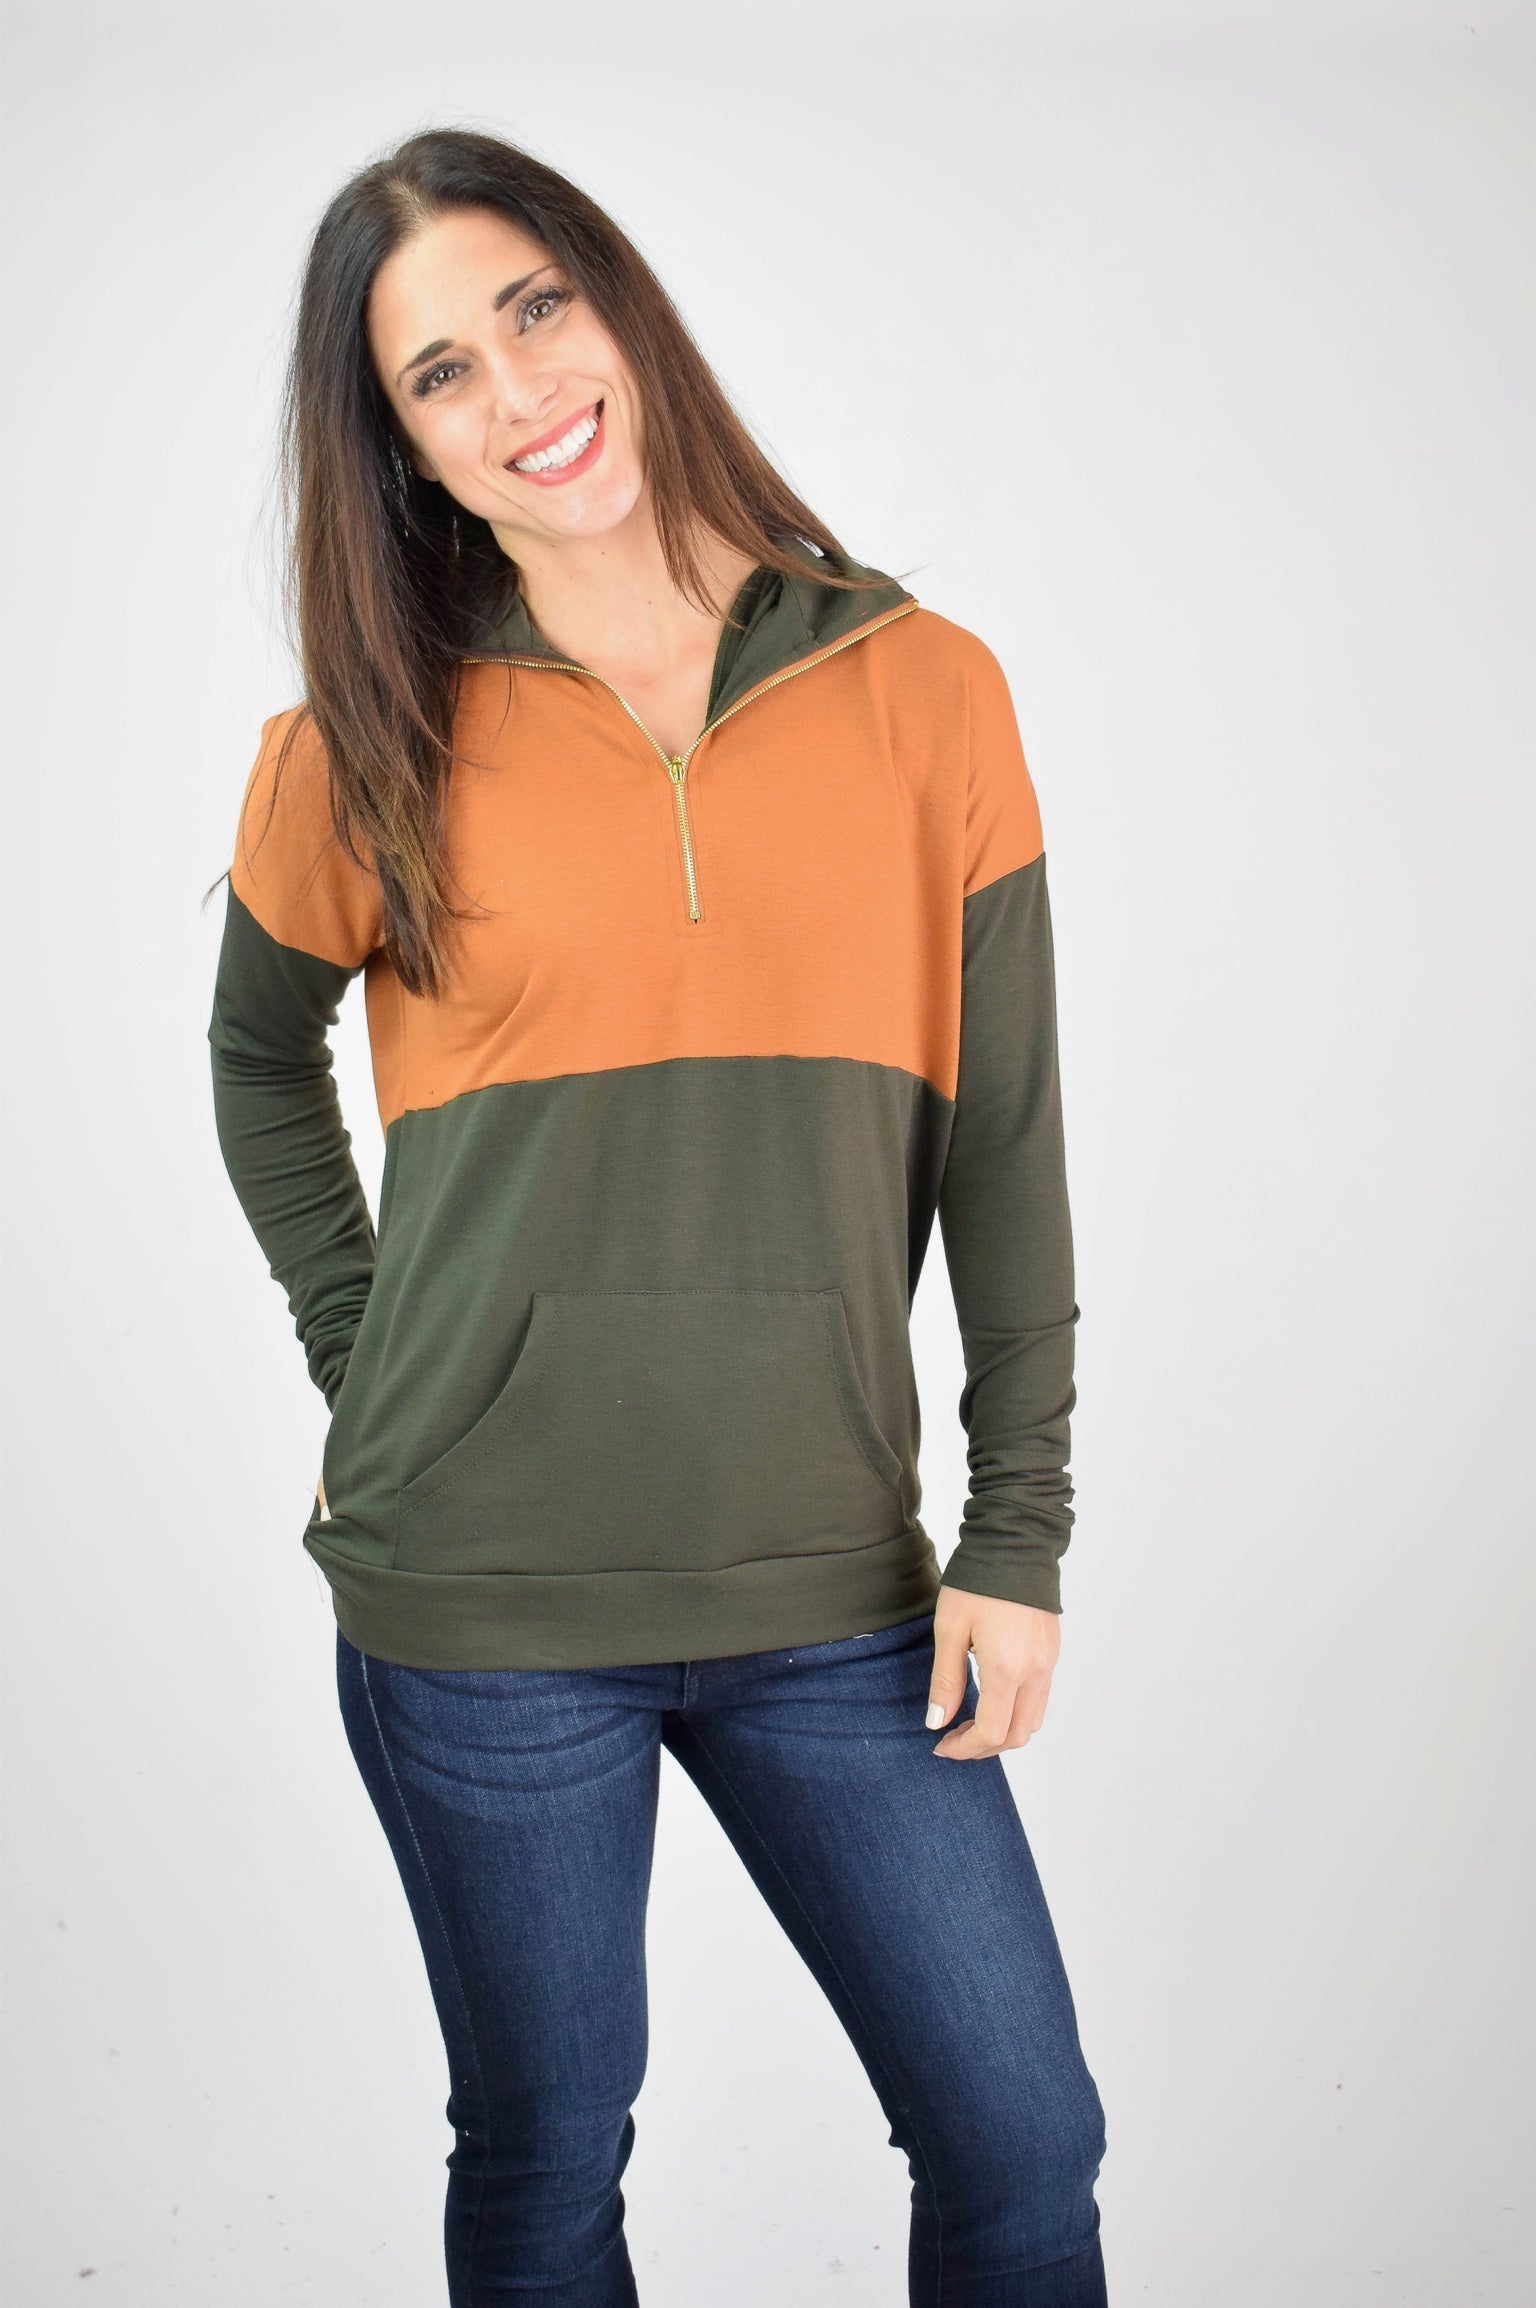 Boundary Lines Two Tone 1/4 Zip Sweatshirt- Camel/Olive